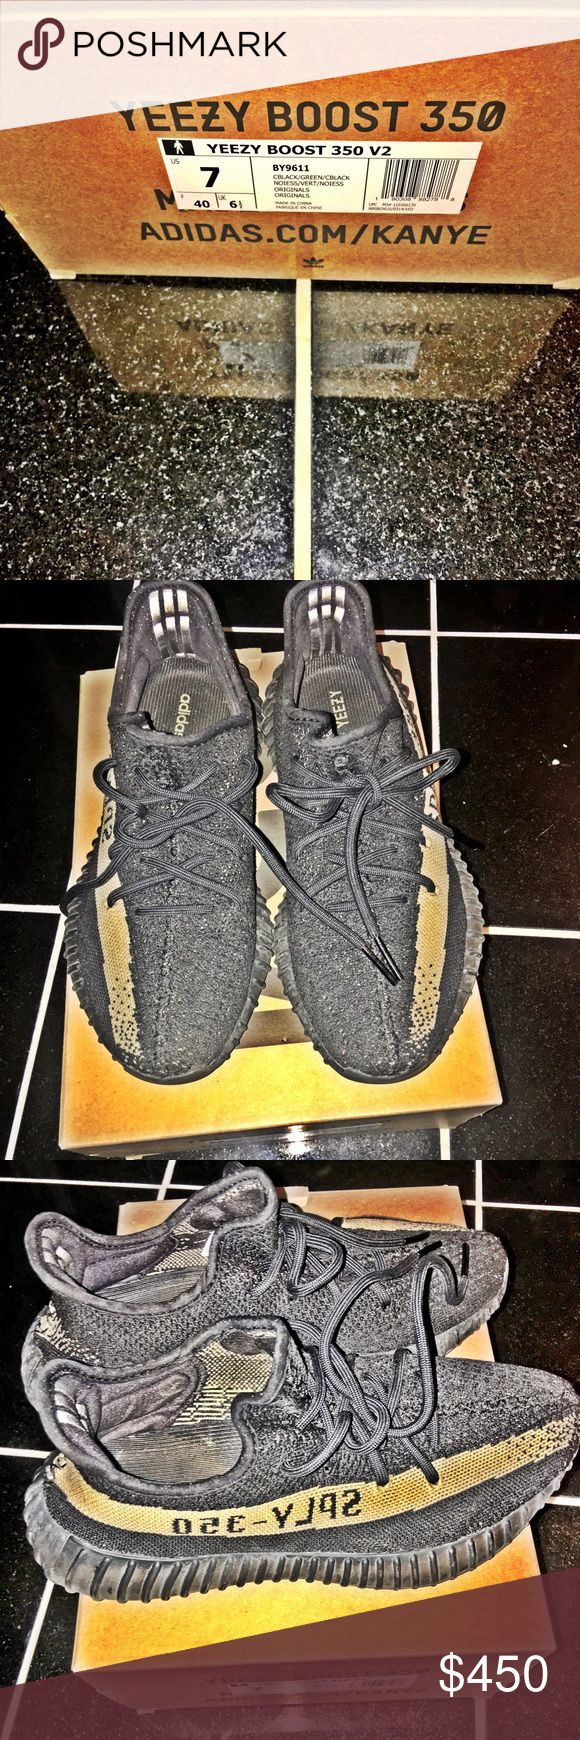 Adidas Yeezy Boost Black/Army green fits true to size worn a number of times .. AUTHENTIC!!! So don't ask I have the receipt STILL! No low ballers thank you.. Adidas Shoes Sneakers